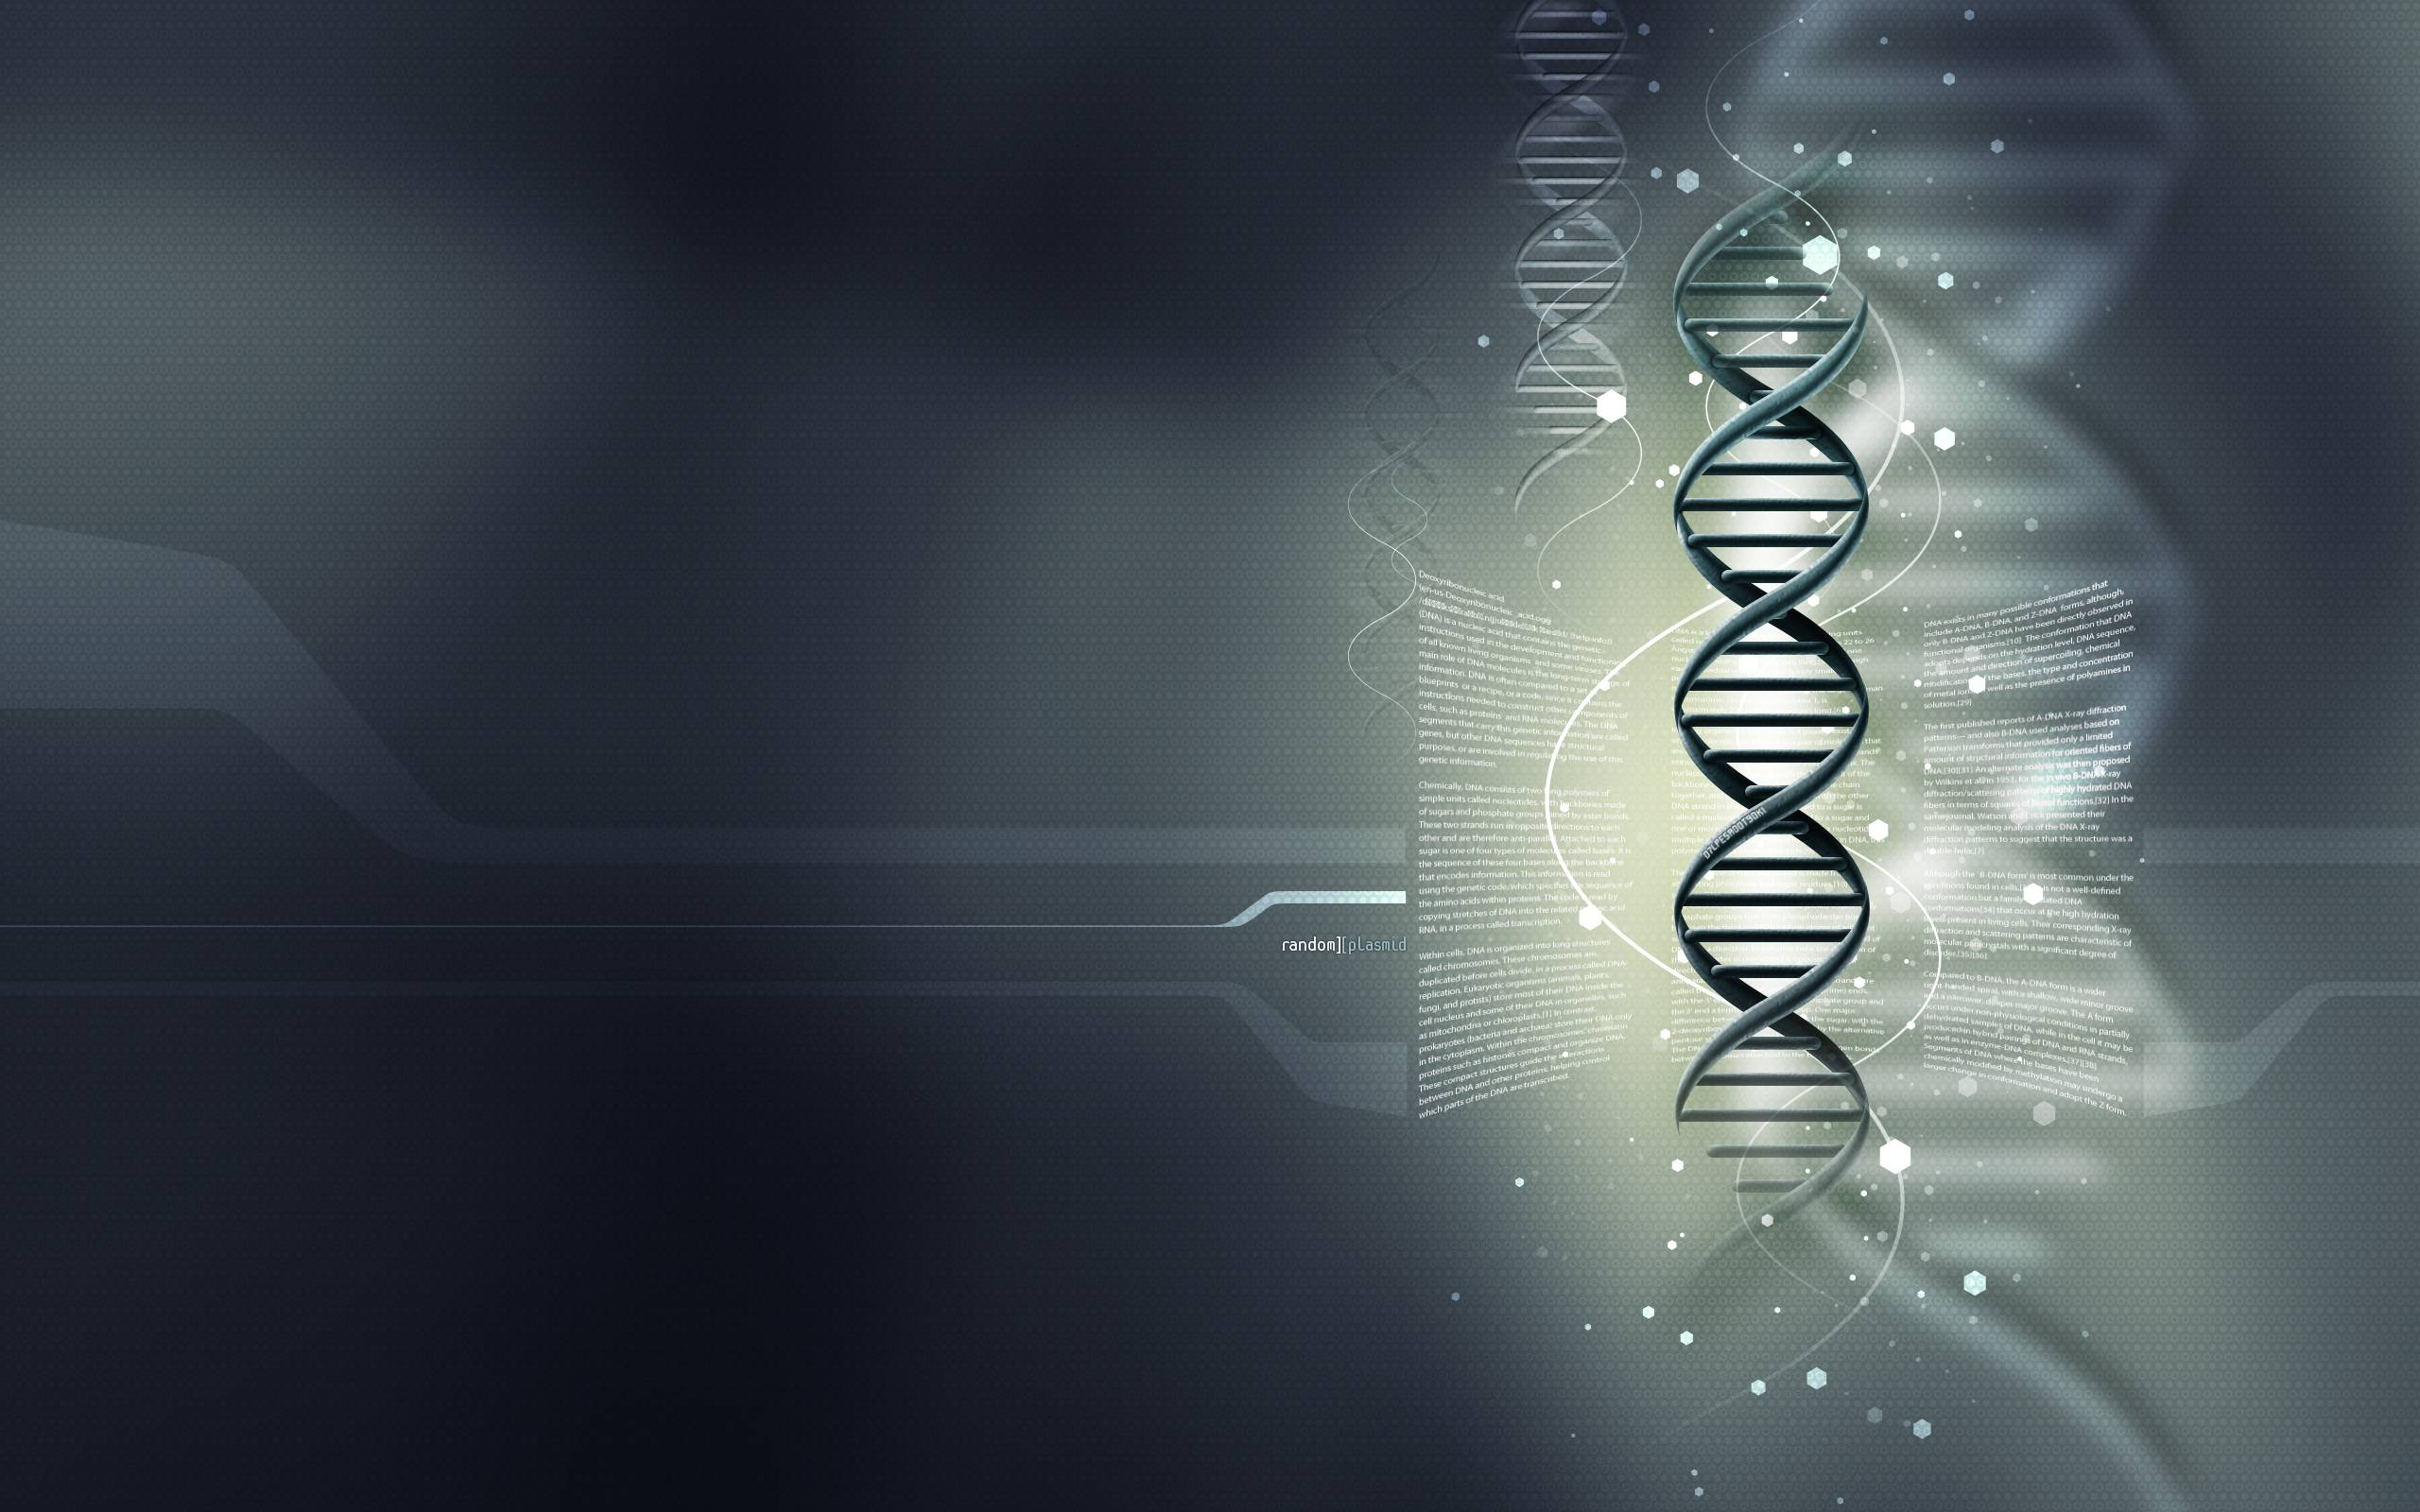 DNA Wallpapers 2560x1600